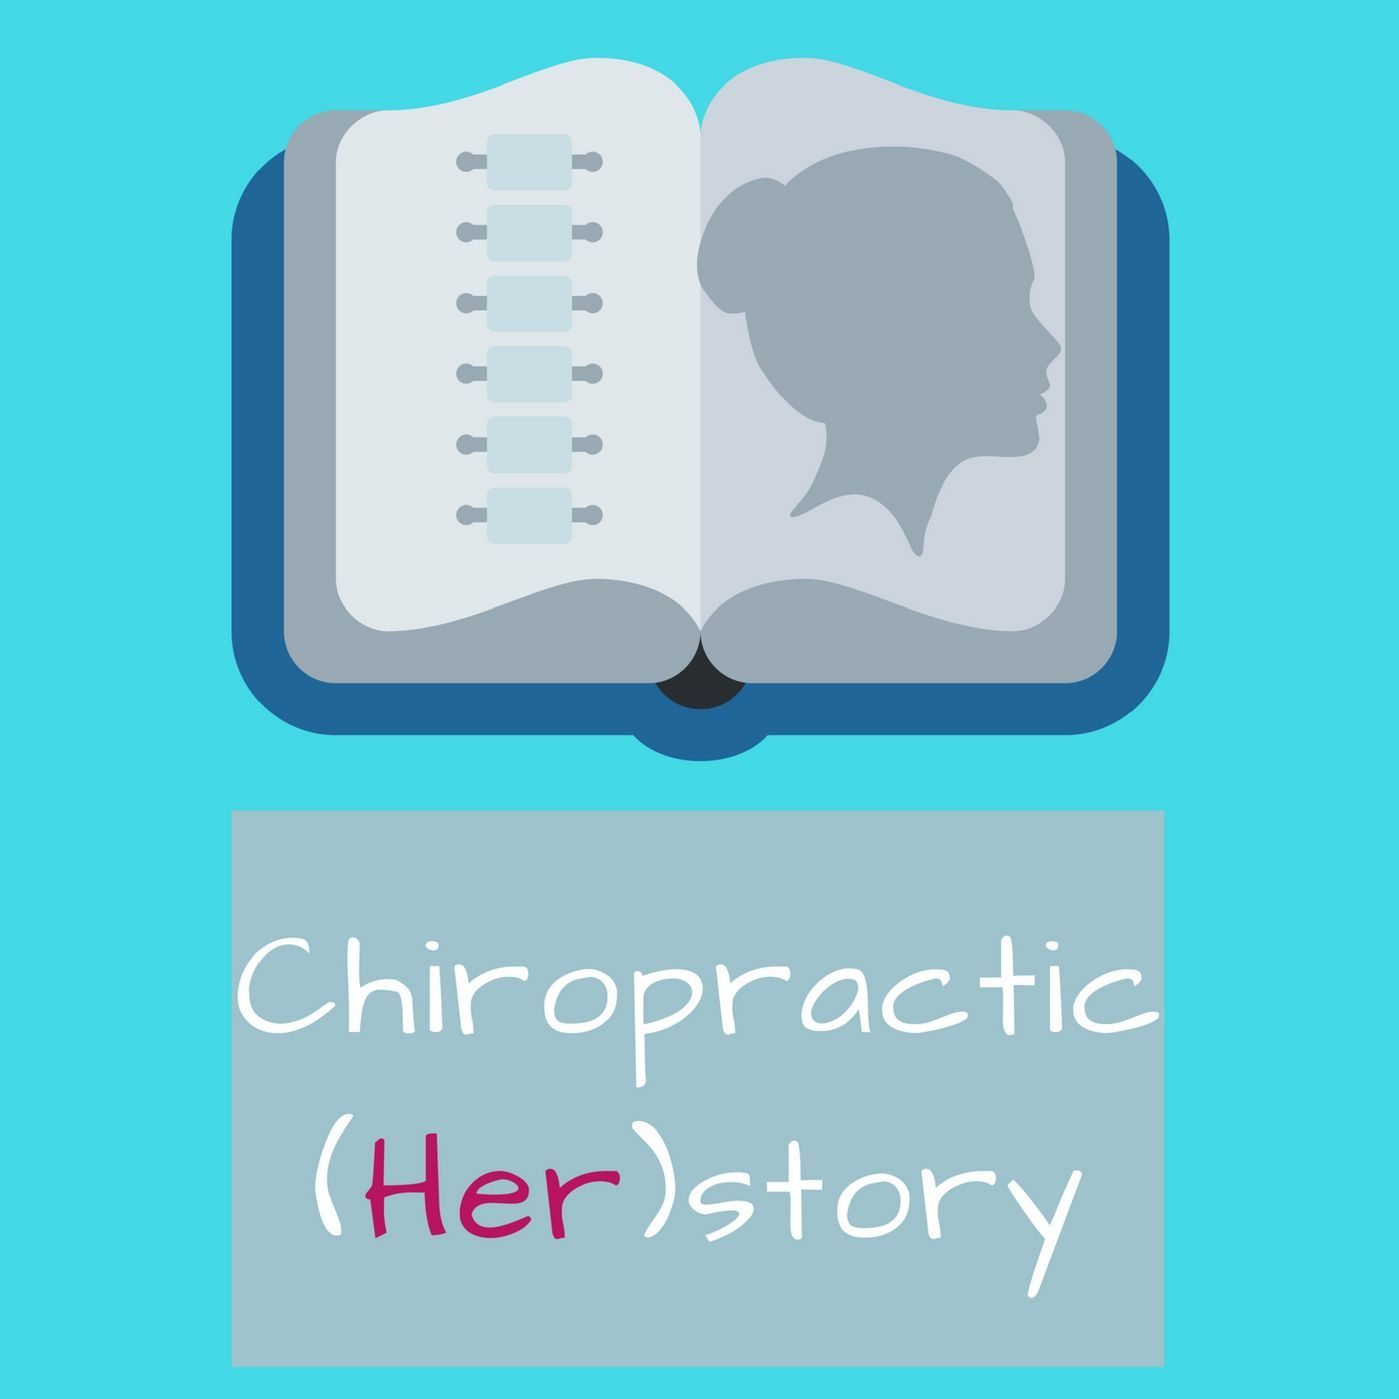 Dr. Sonia McGowin Chiropractic (Her)story Episode 61